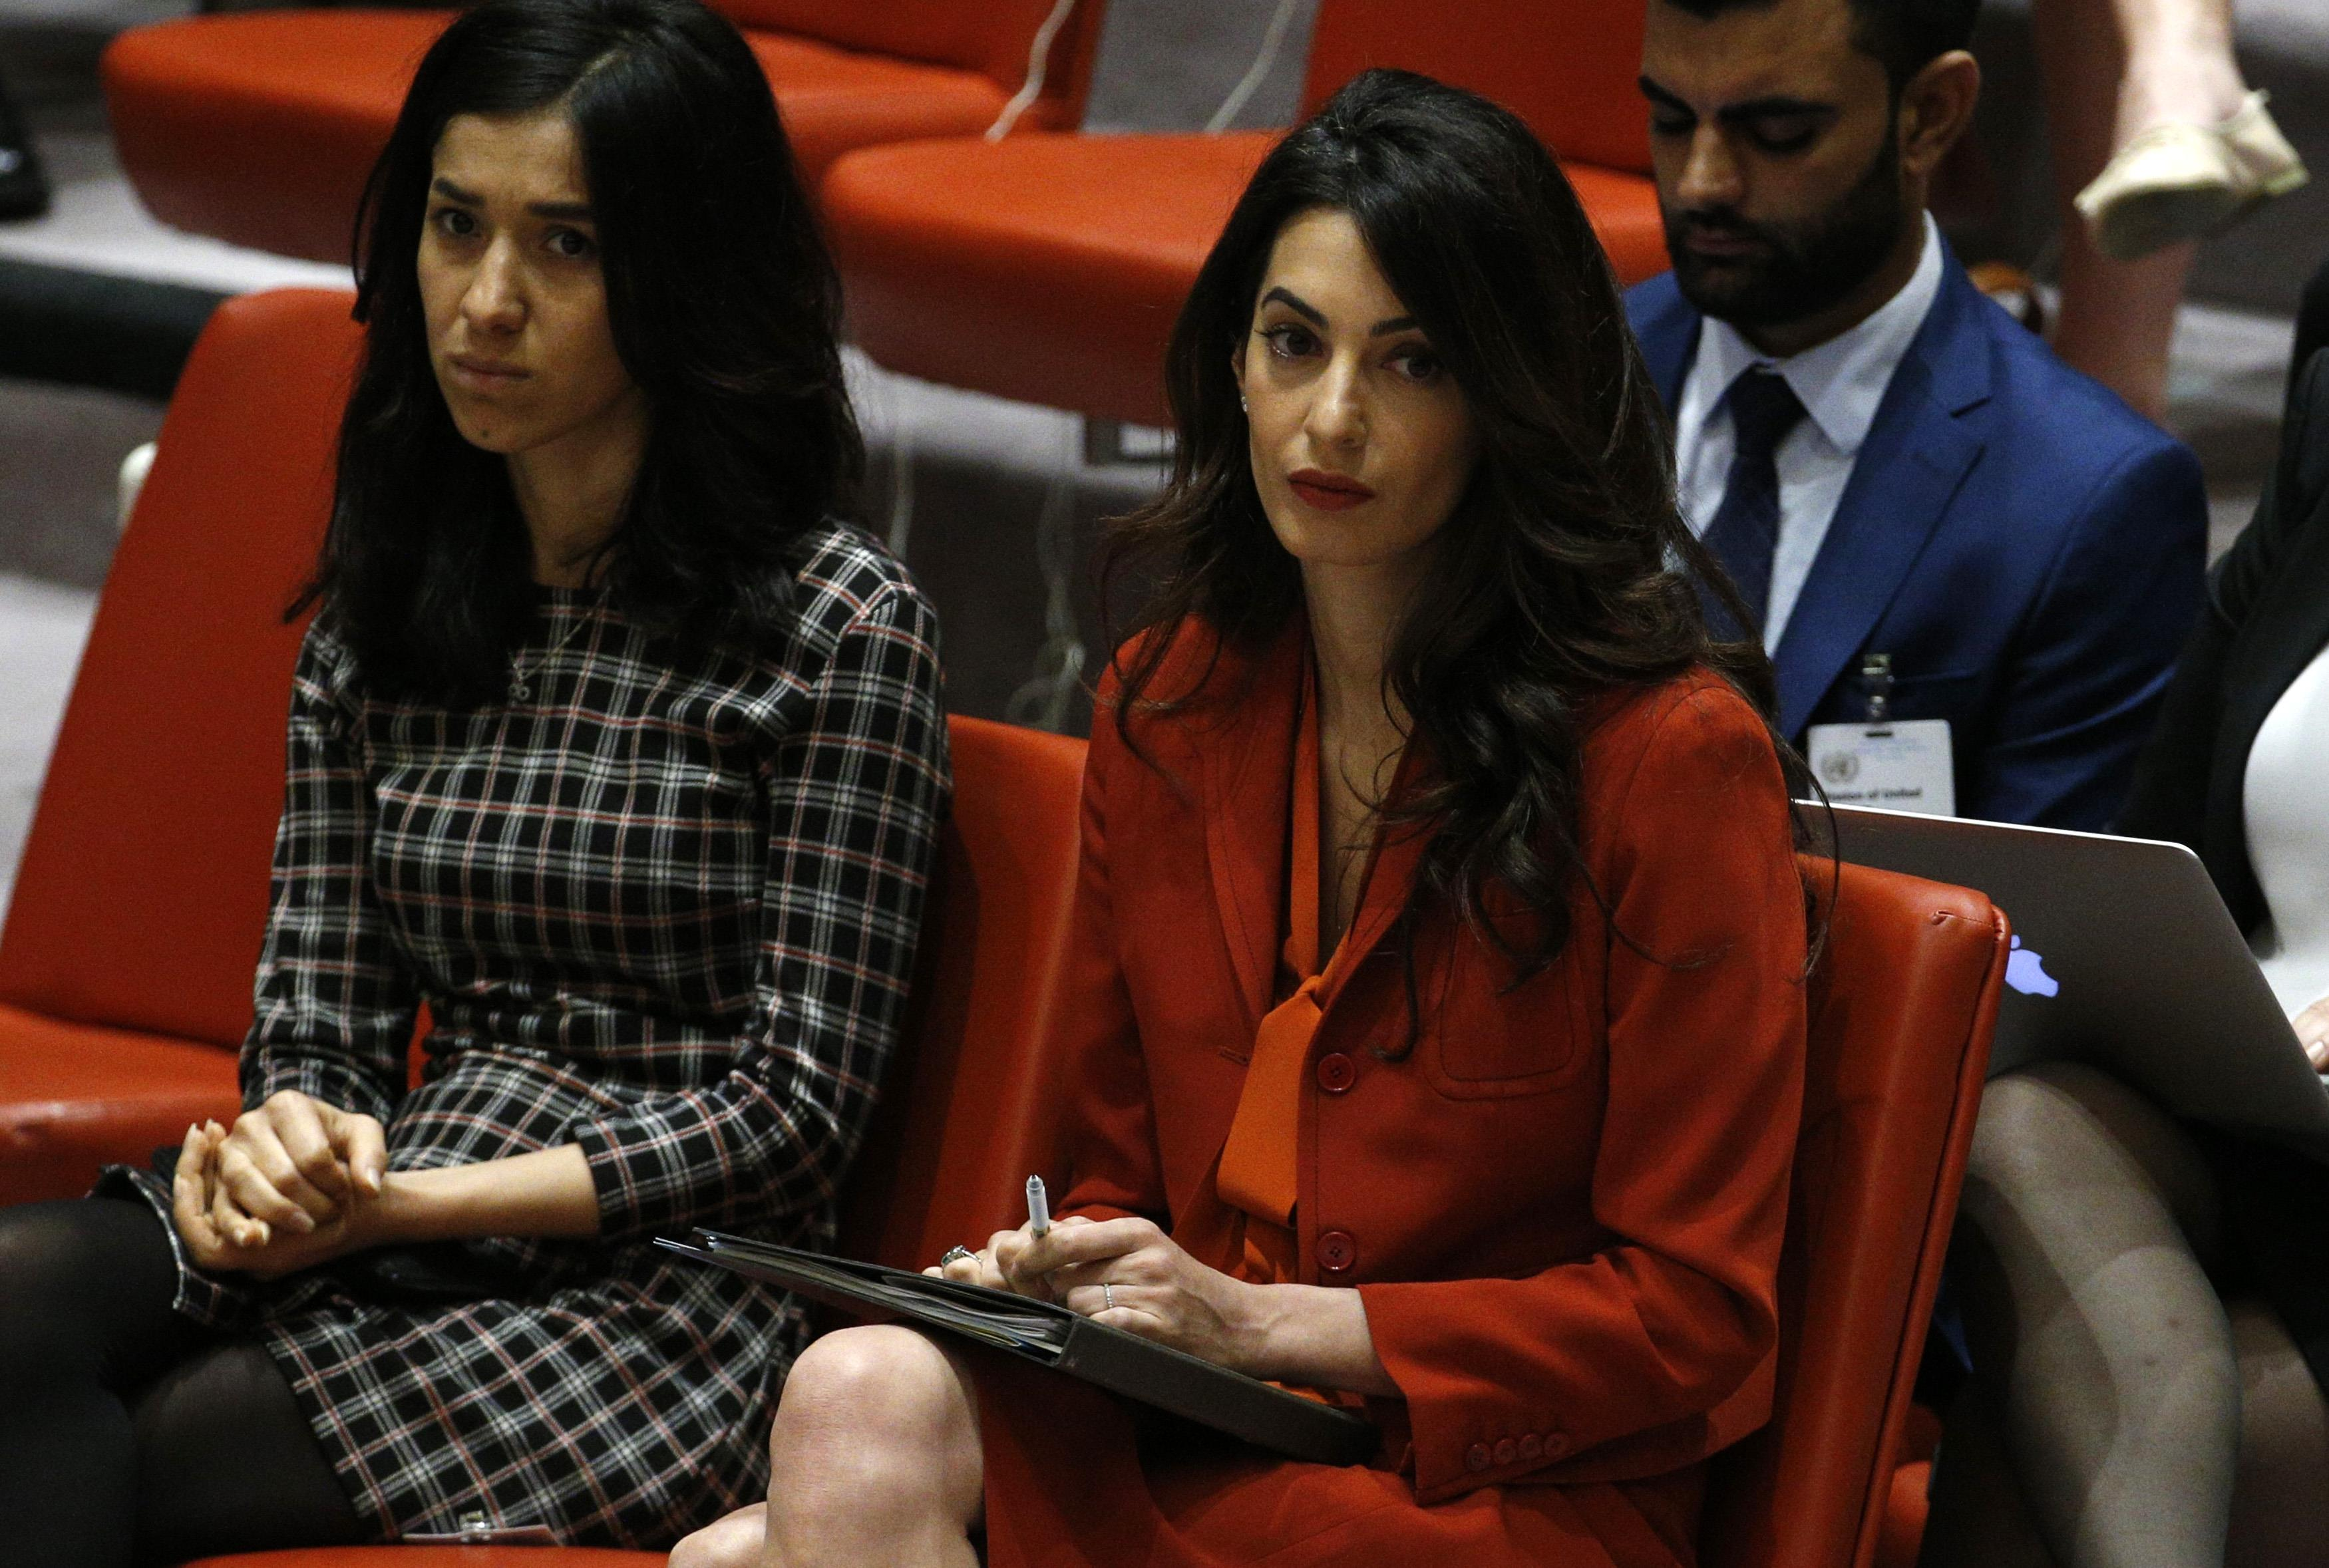 Activist Amal Clooney (R) attends a United Nations Security Council meeting set to adopt a resolution to help preserve evidence of Islamic State crimes in Iraq, during the 72nd United Nations General Assembly at U.N. Headquarters in New York, U.S., September 21, 2017. REUTERS/Brendan